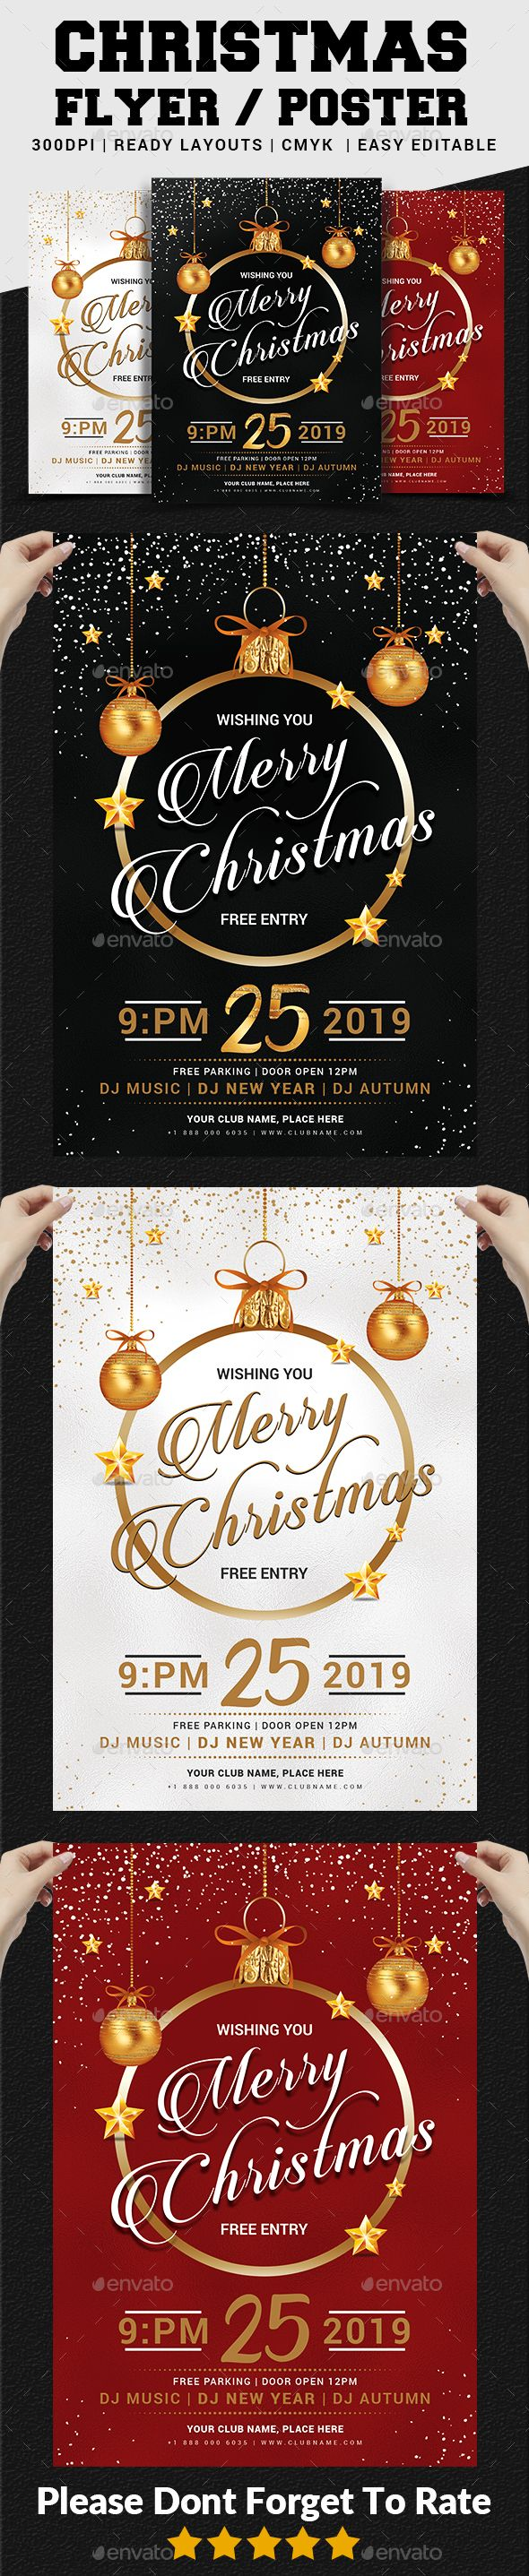 Christmas Flyer. Event flyer template. #flyer #design #printDesign #BlackParty #christmas #ChristmasBall #ChristmasEve #ChristmasEvent #ChristmasFlyer #ChristmasNight #ChristmasParty #ChristmasTemplate #concert #editable #elegant #gift #MerryChristmas #NewYearFlyer #NewYearParty #nightclub #poster #print #psd #red #xmas #XmasFlyer #XmasParty